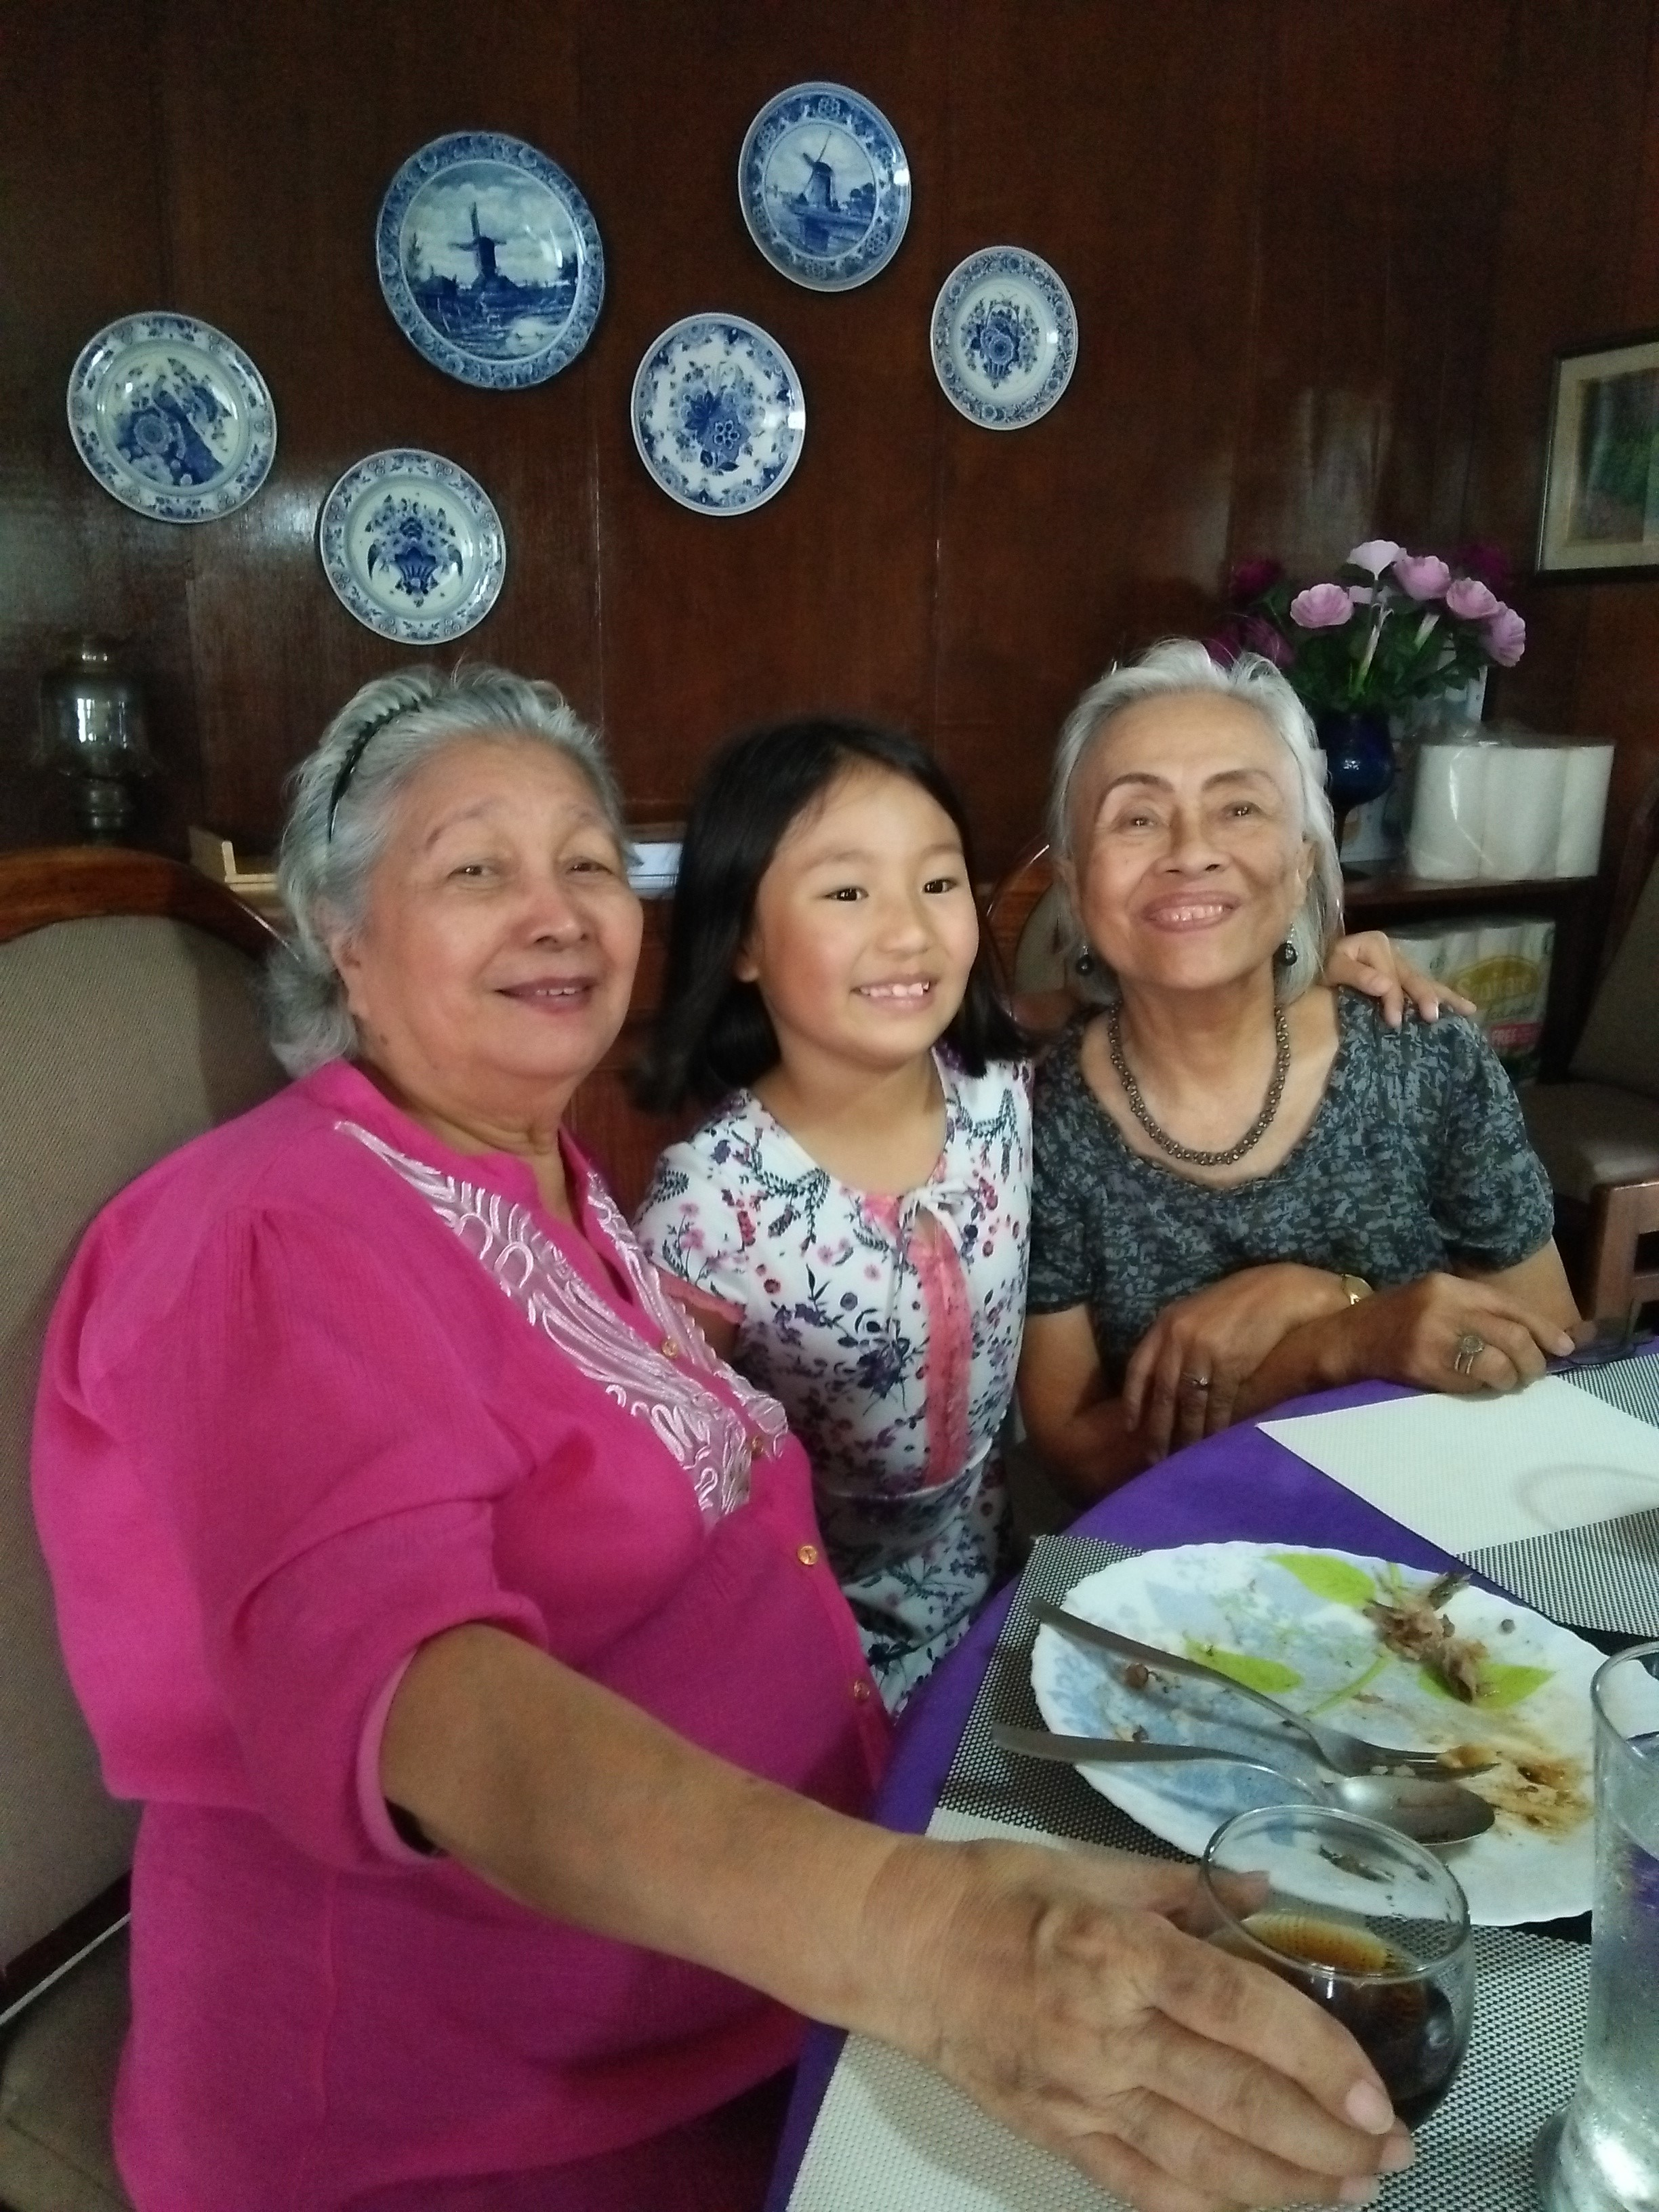 Aurelie enjoying lunch with Lola Alice (in pink) and Lola Mimi (in grey).